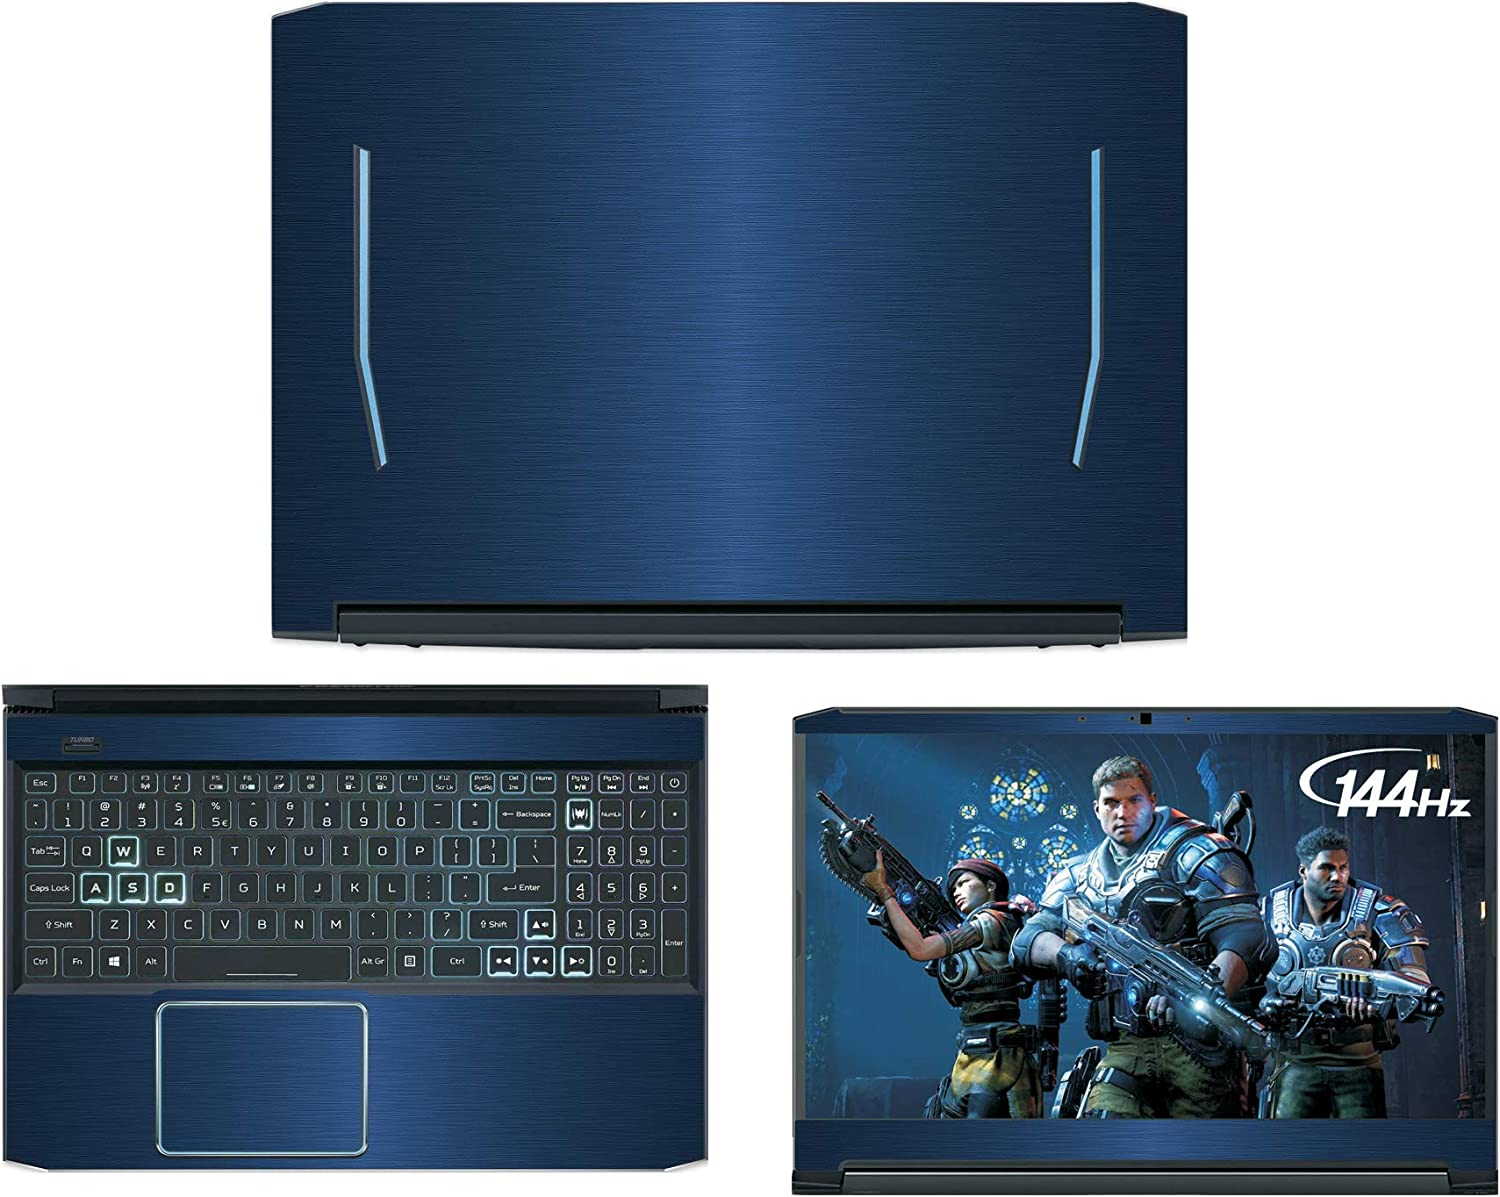 "Decalrus - Protective Decal for Acer Predator Helios 300 PH315-52 (15.6"" Screen) Laptop Blue Texture Brushed Aluminum Skin case Cover wrap BAACprdator_Helio_300_PH315-52Blue"